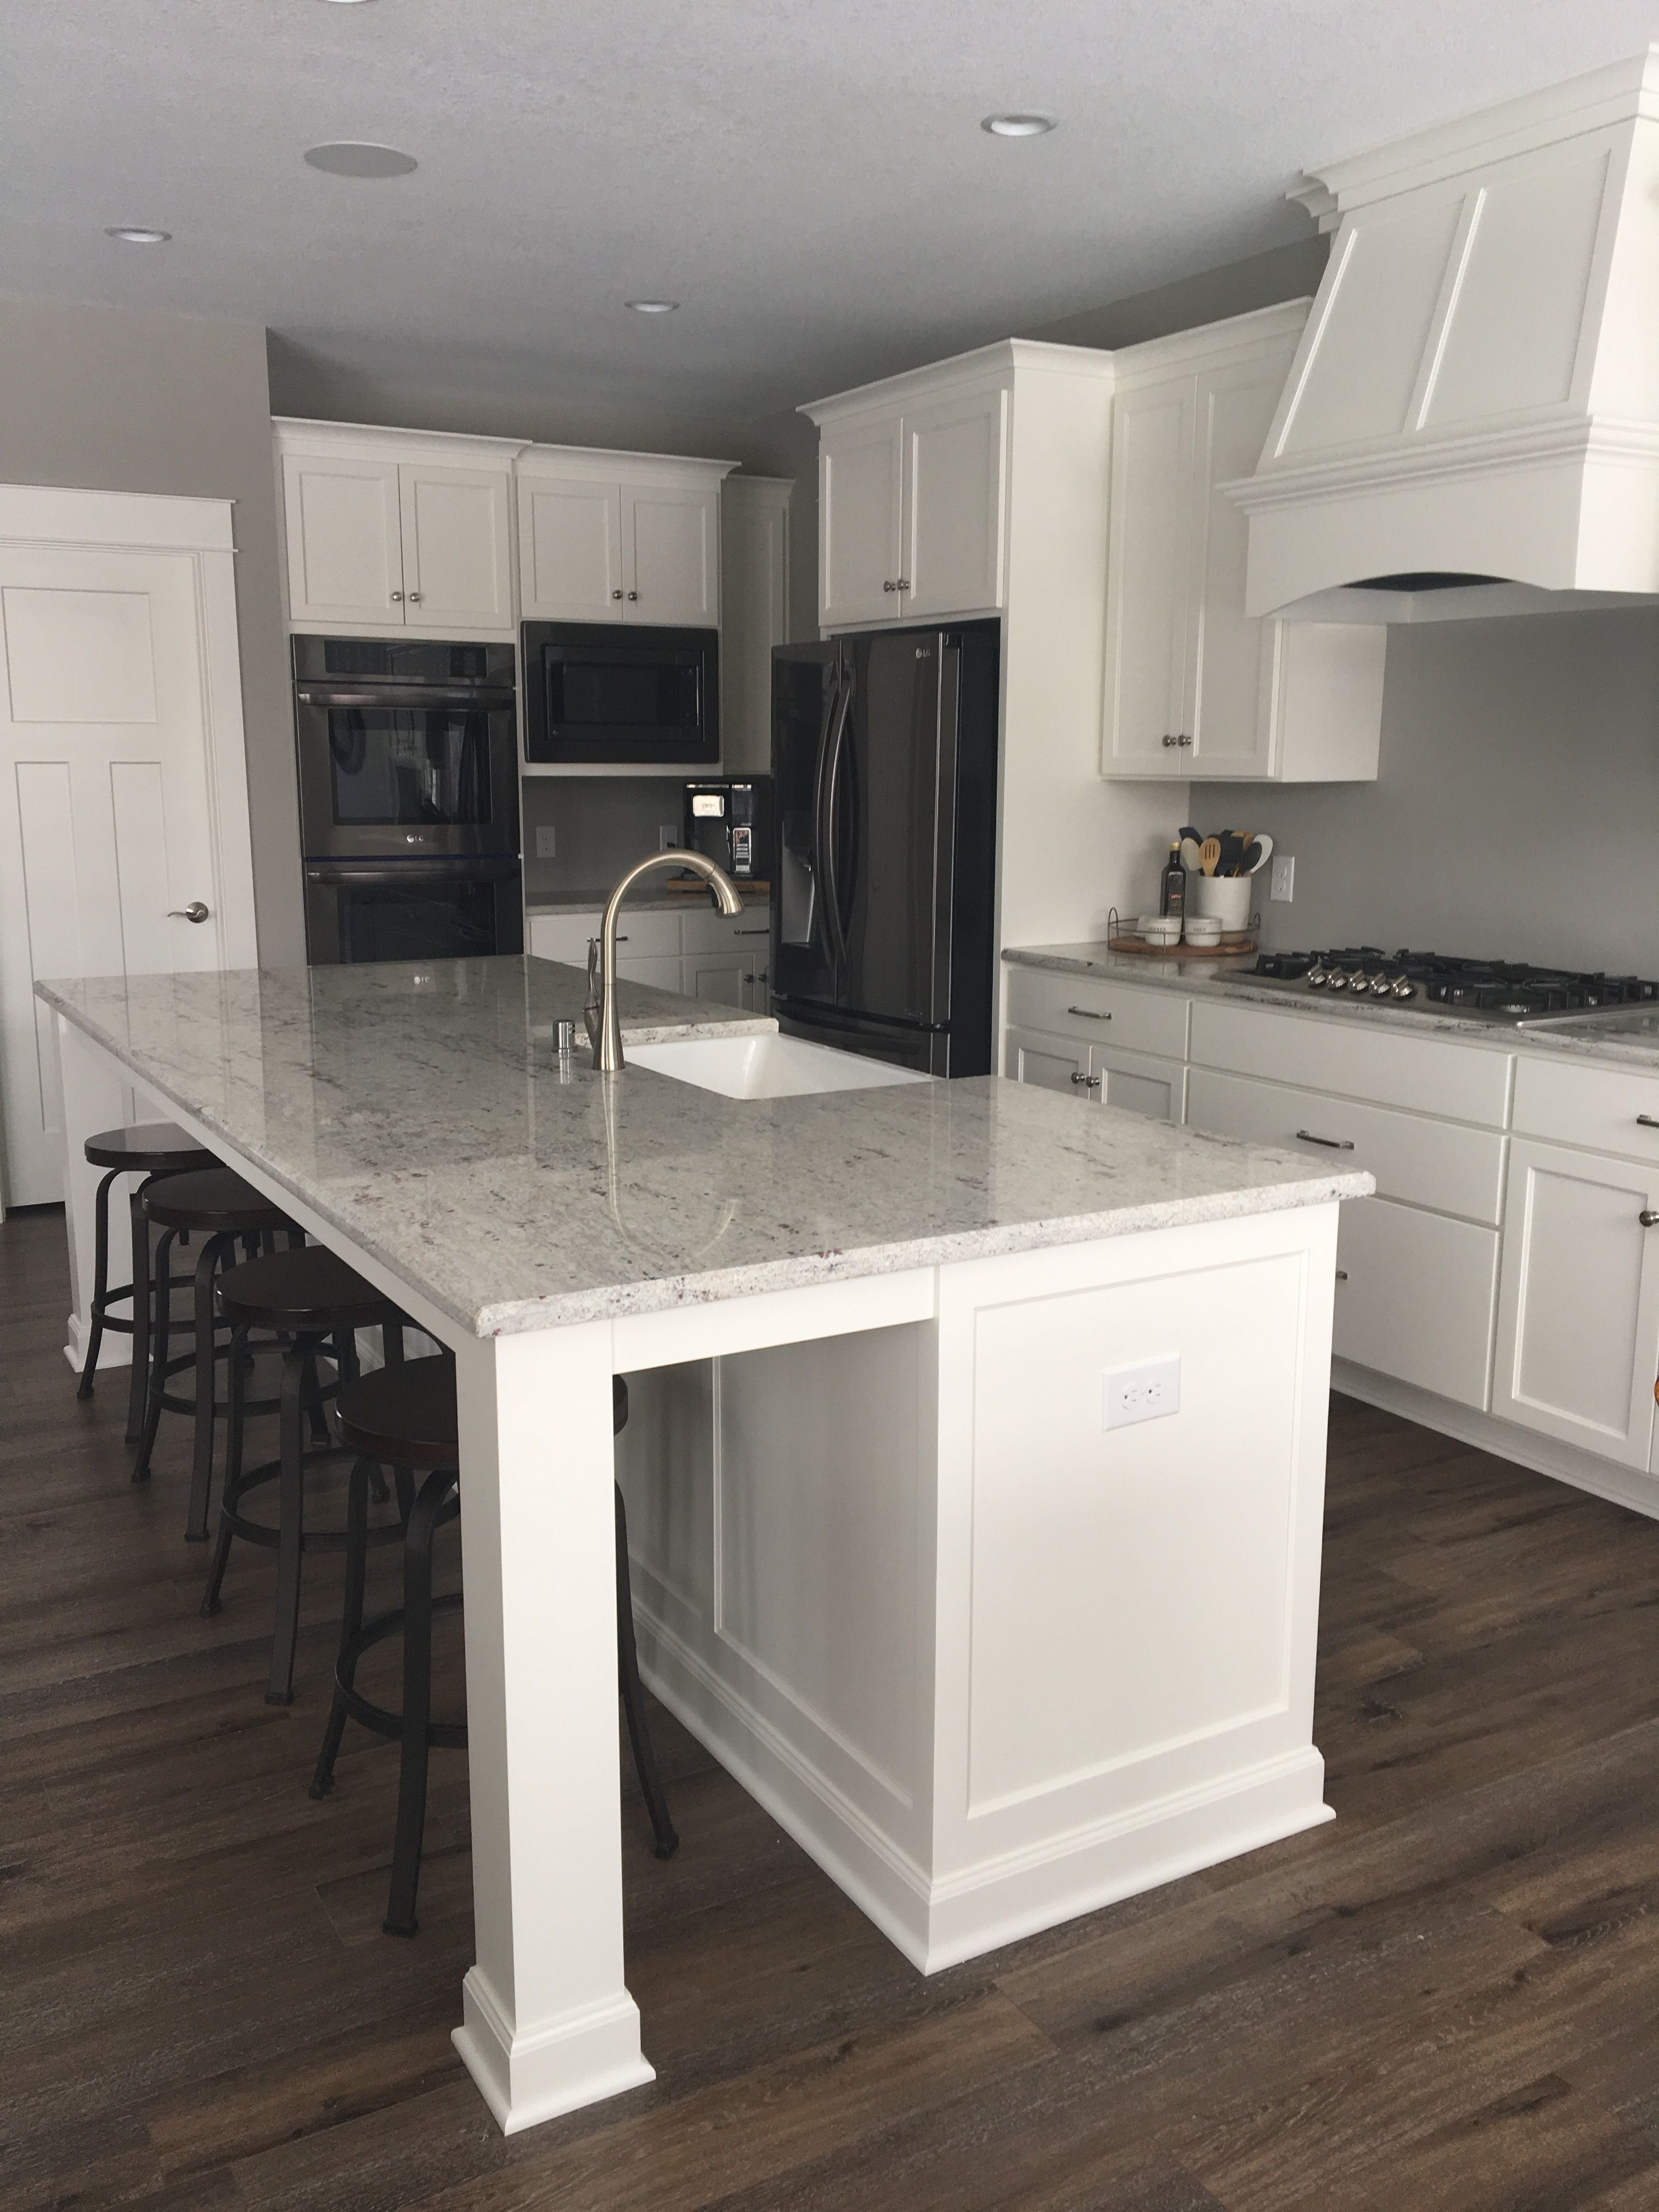 This White Kitchen Is Classic Yet Modern And Features Crisp White Cabinetry An Oversized F Black Appliances Kitchen White Appliances White Kitchen Appliances